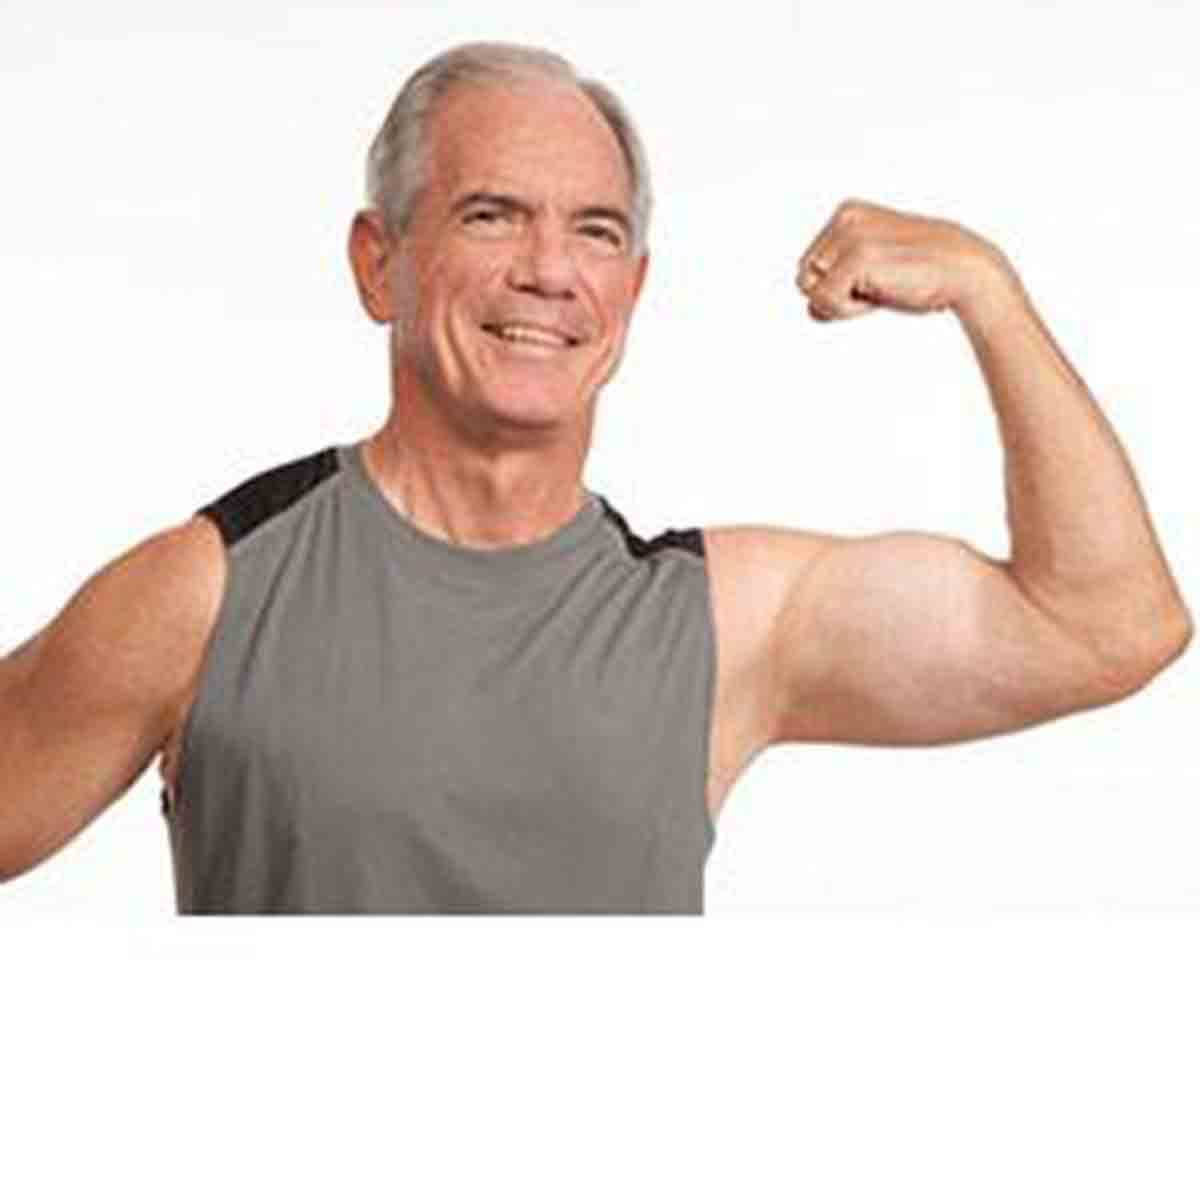 How To Fight Age-Related Muscle Loss